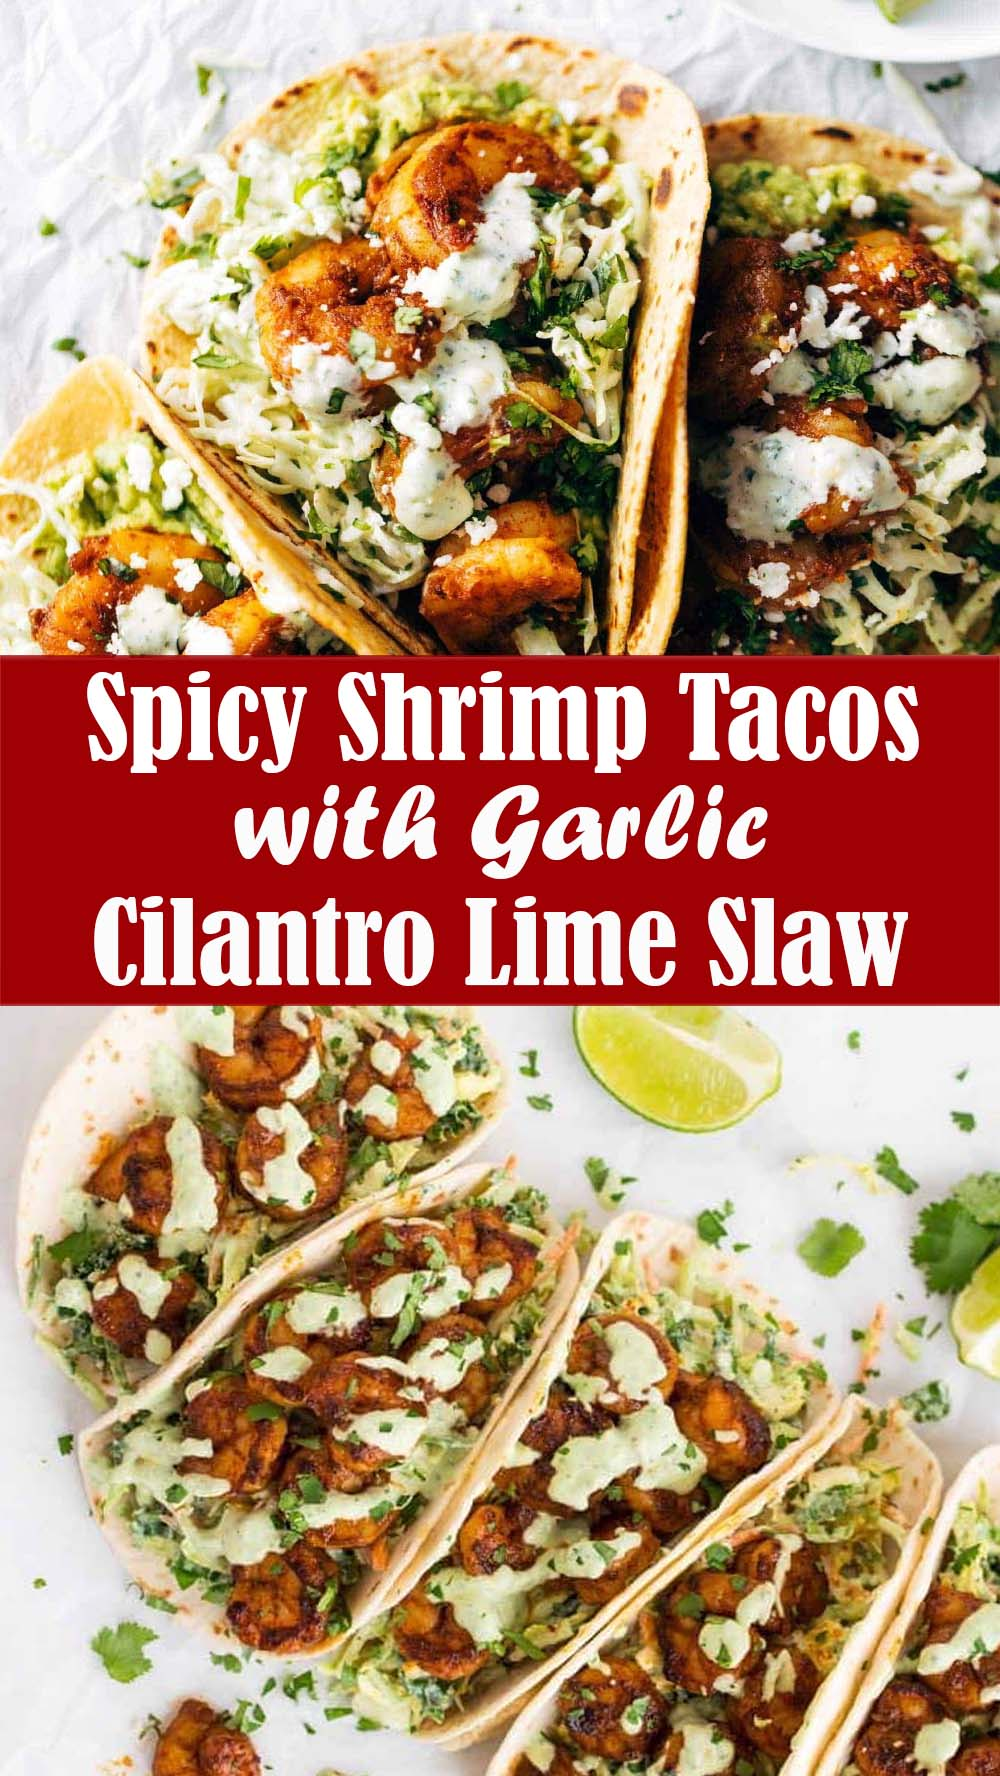 The Best Spicy Shrimp Tacos with Garlic Cilantro Lime Slaw